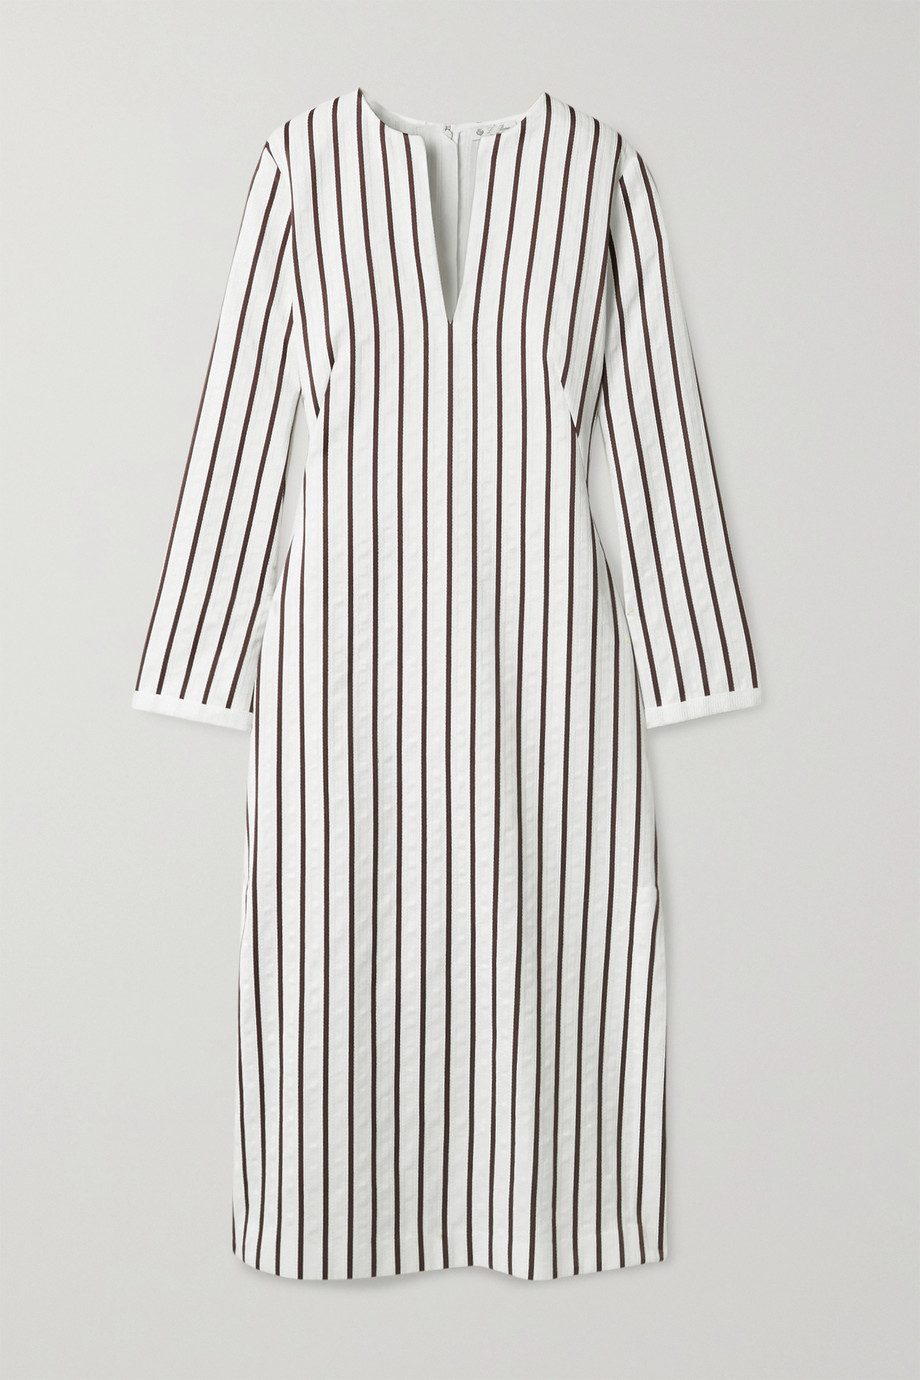 Loro Piana Striped cotton-blend jacquard midi dress